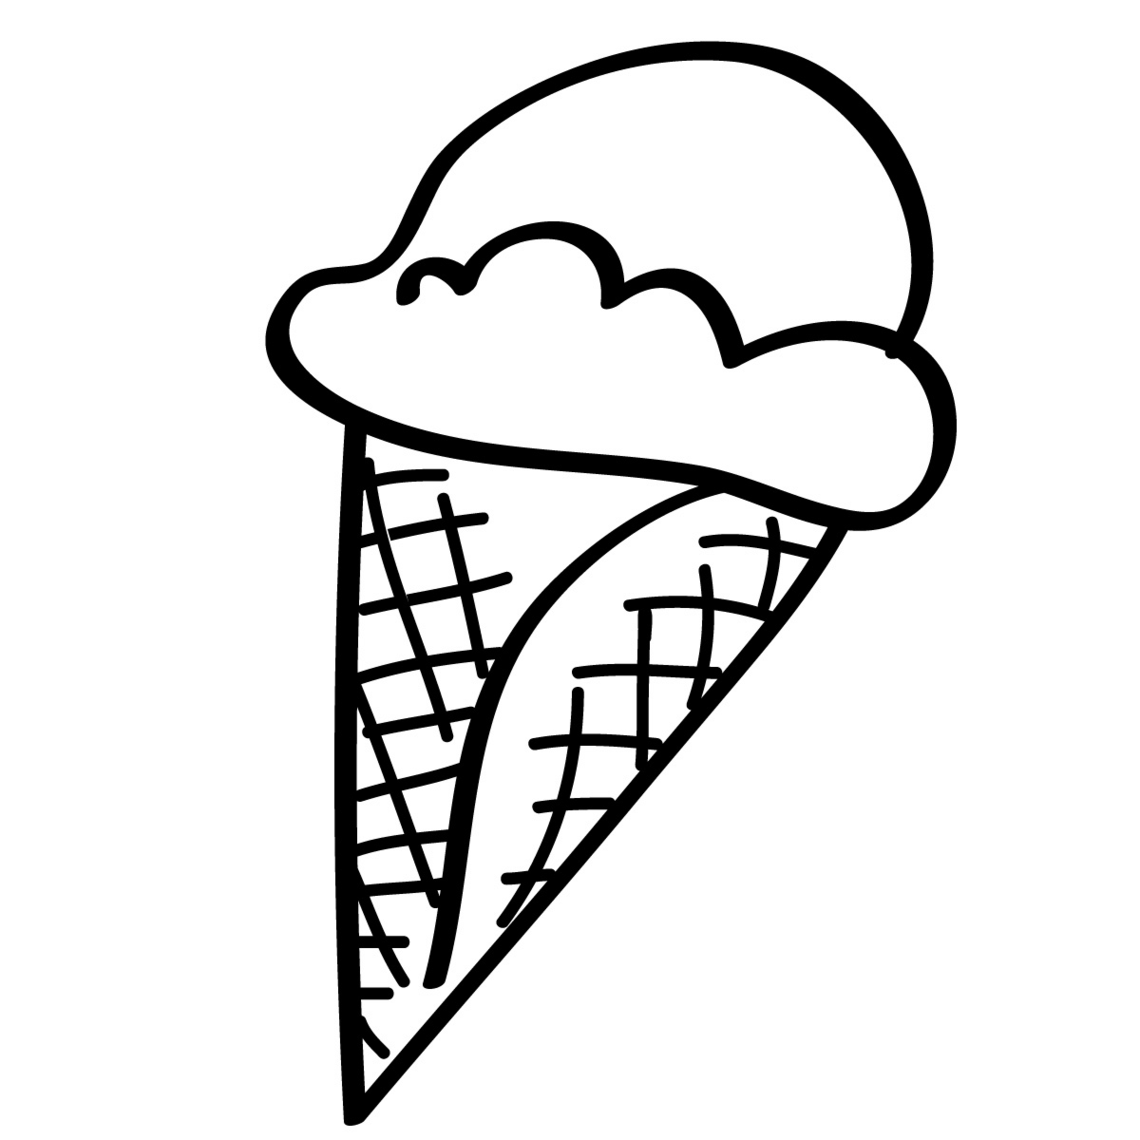 coloring pages of ice cream sundaes yummy ice cream sundae coloring page riscos pinterest of pages ice sundaes cream coloring